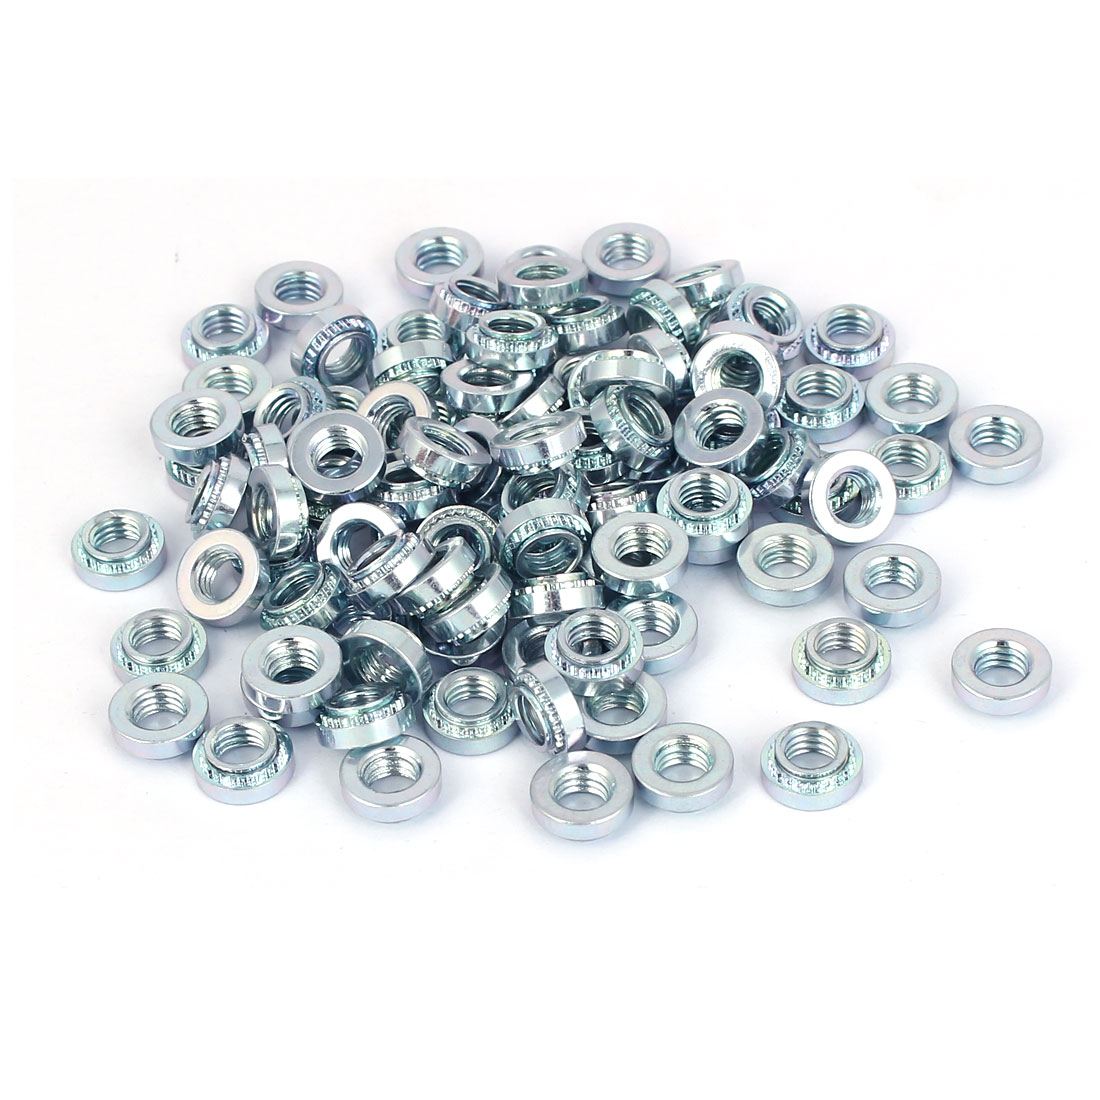 Carbon Steel Self Clinching Nut 5mm Thread Dia 100pcs for 1.4mm Thin Plates